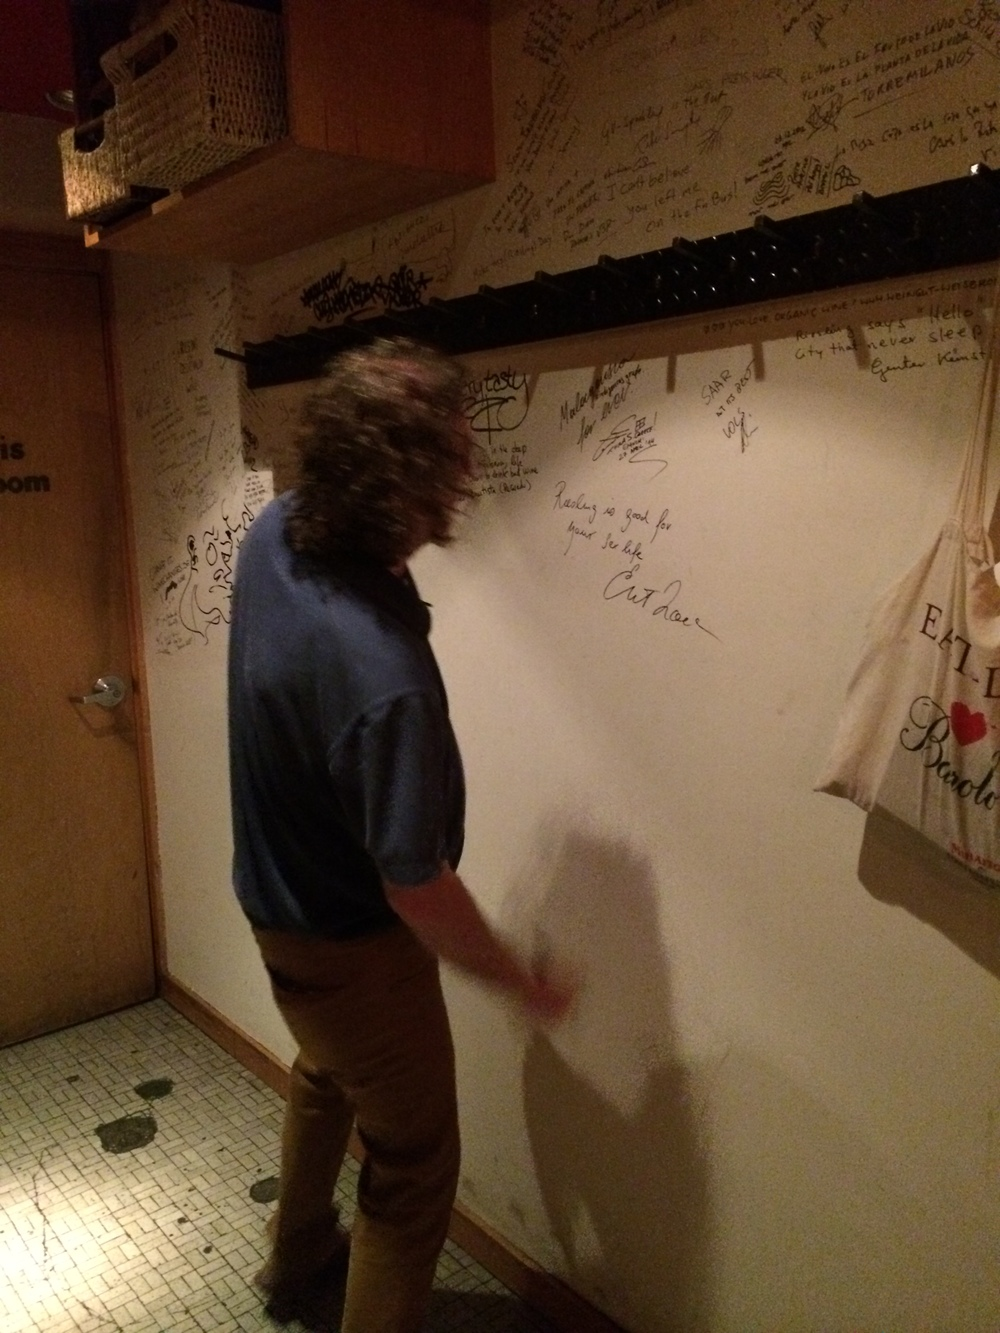 Ernie Signs the Wall